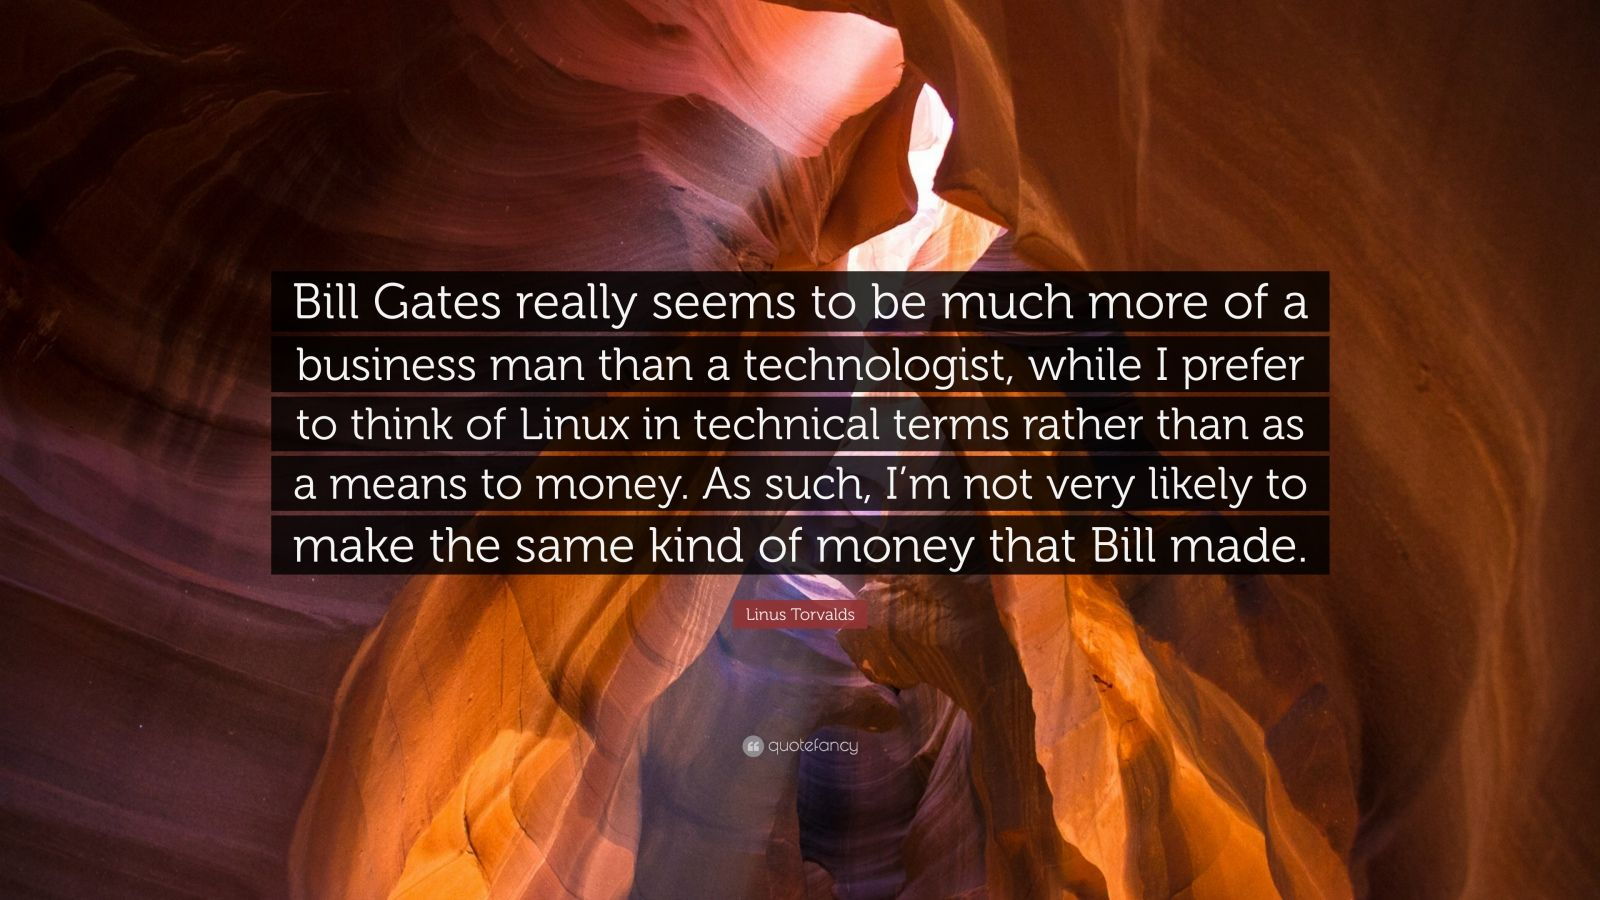 "Linus Torvalds Quote: ""Bill Gates really seems to be much more of a business man than a technologist, while I prefer to think of Linux in technical terms rather than as a means to money. As such, I'm not very likely to make the same kind of money that Bill made."""